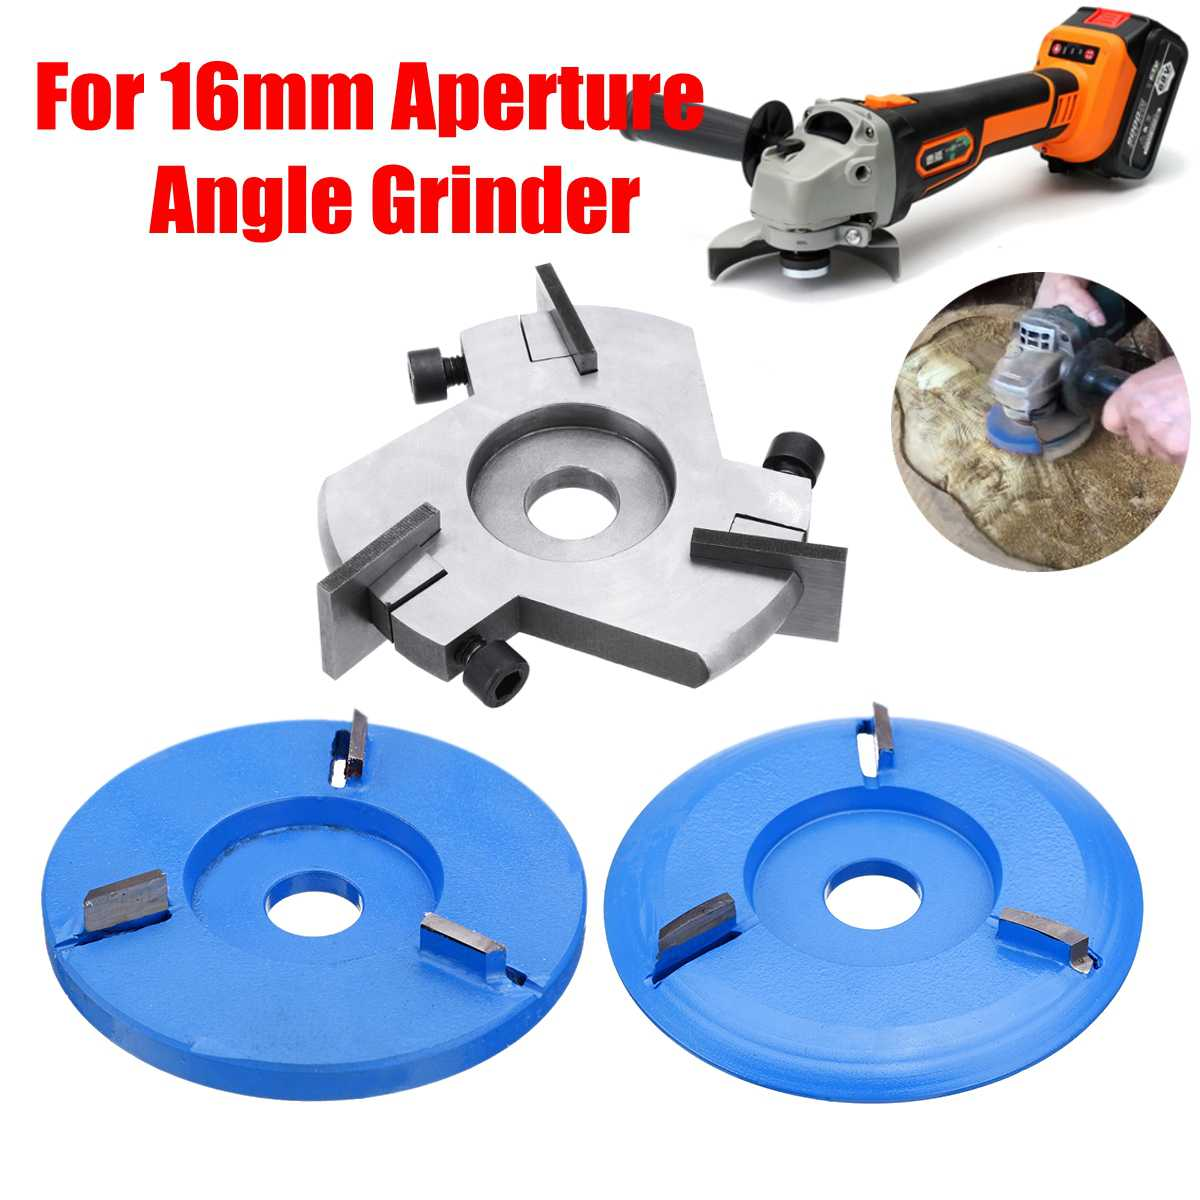 Power Wood Carving Cutter Tool Angle Grinder Attachment Detachable/Round/Flat Teeth For 16mm Aperture Angle Grinder